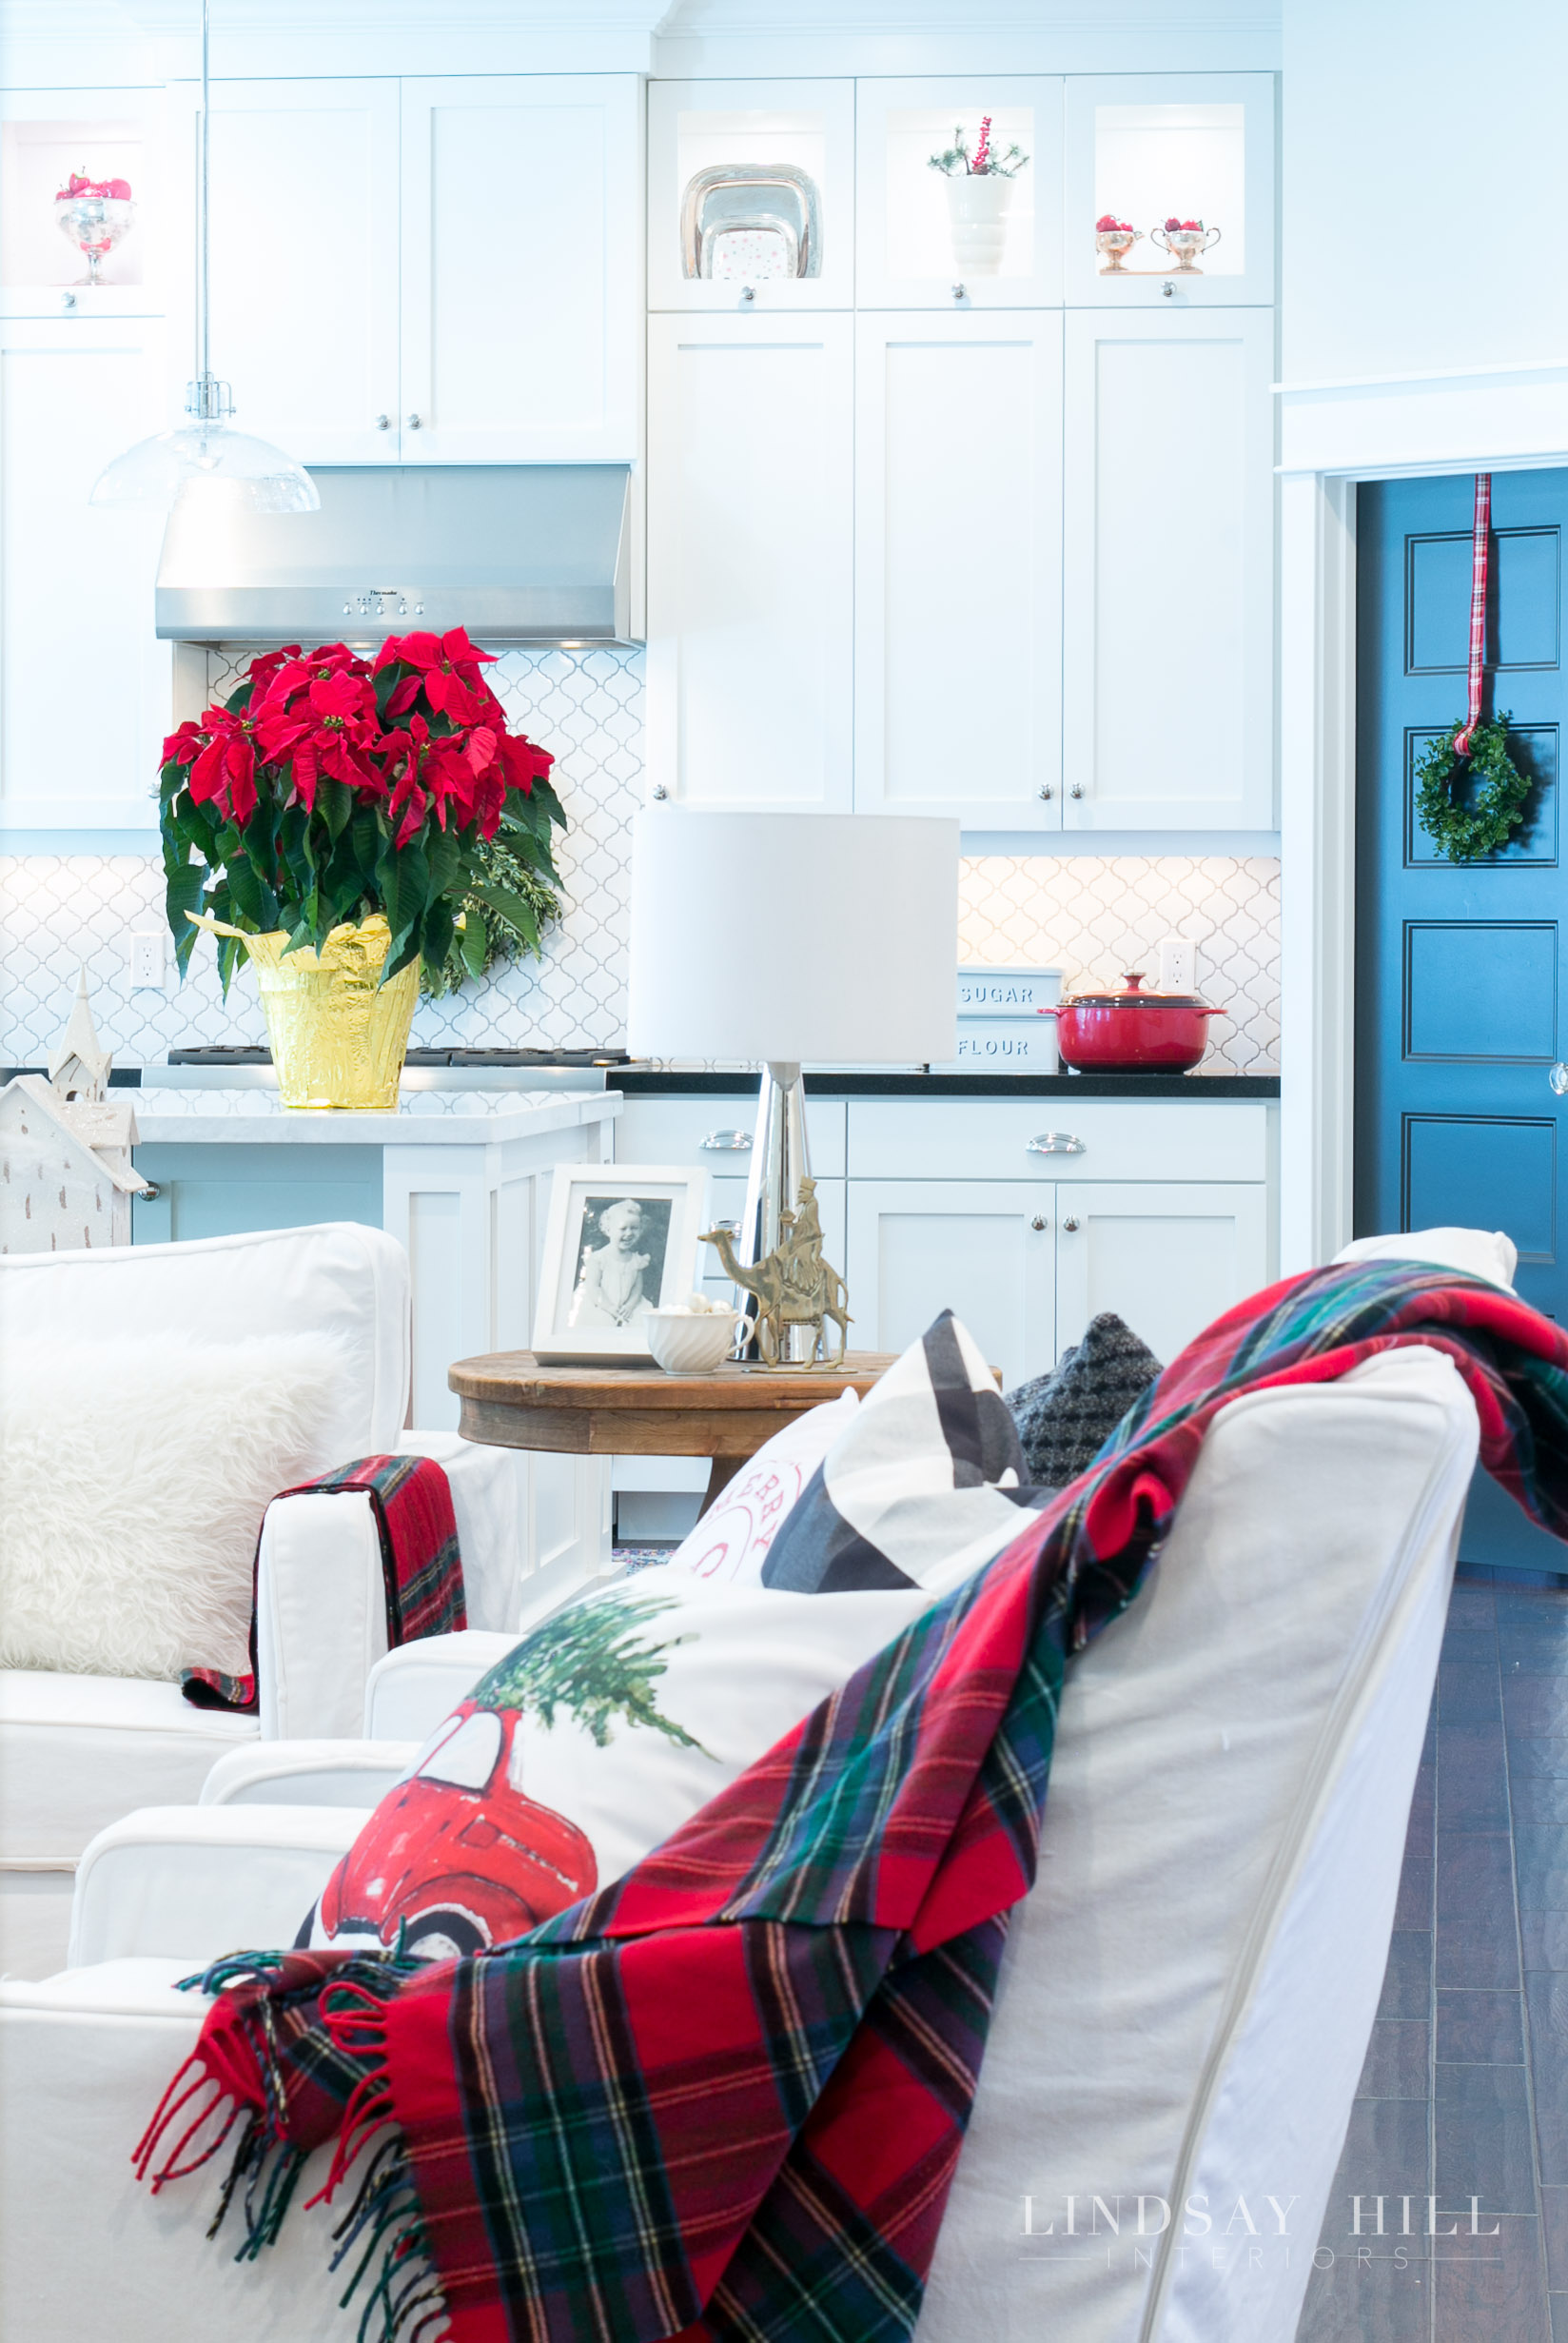 Lindsay Hill Interiors holiday home tour kitchen